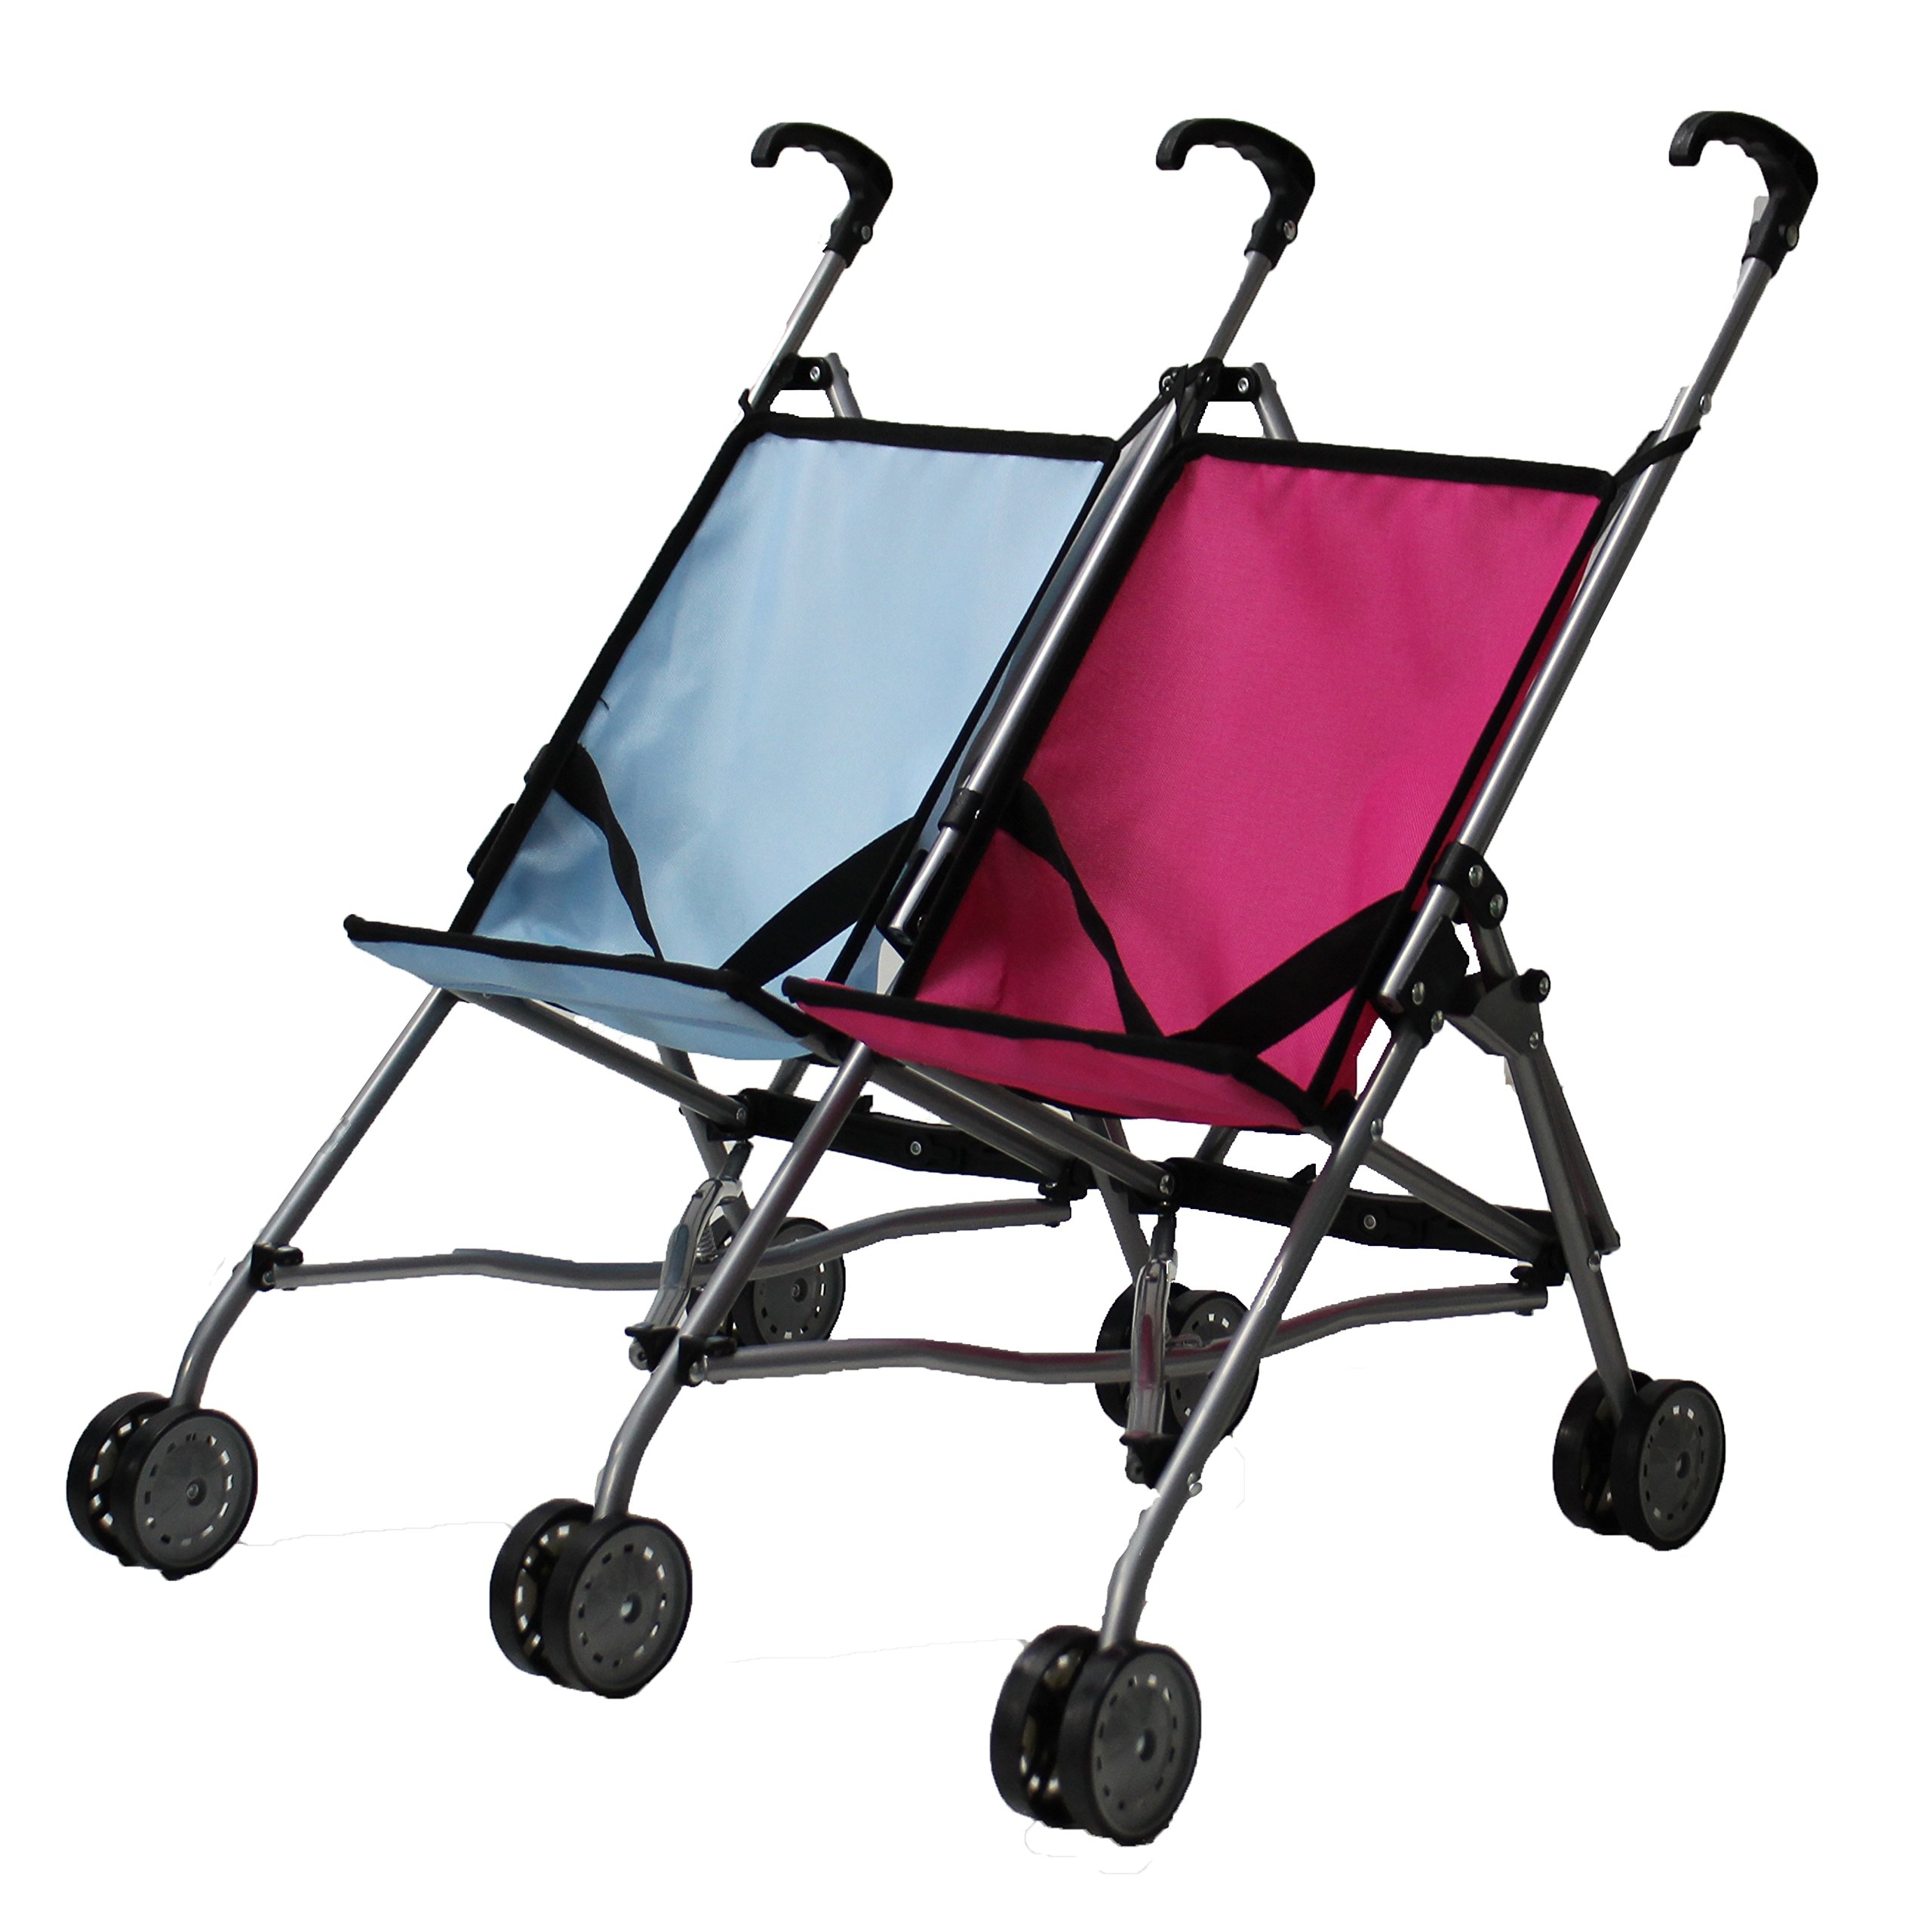 Mommy & Me Twin Doll Stroller for 1 Boy Doll and 1 Girl Doll